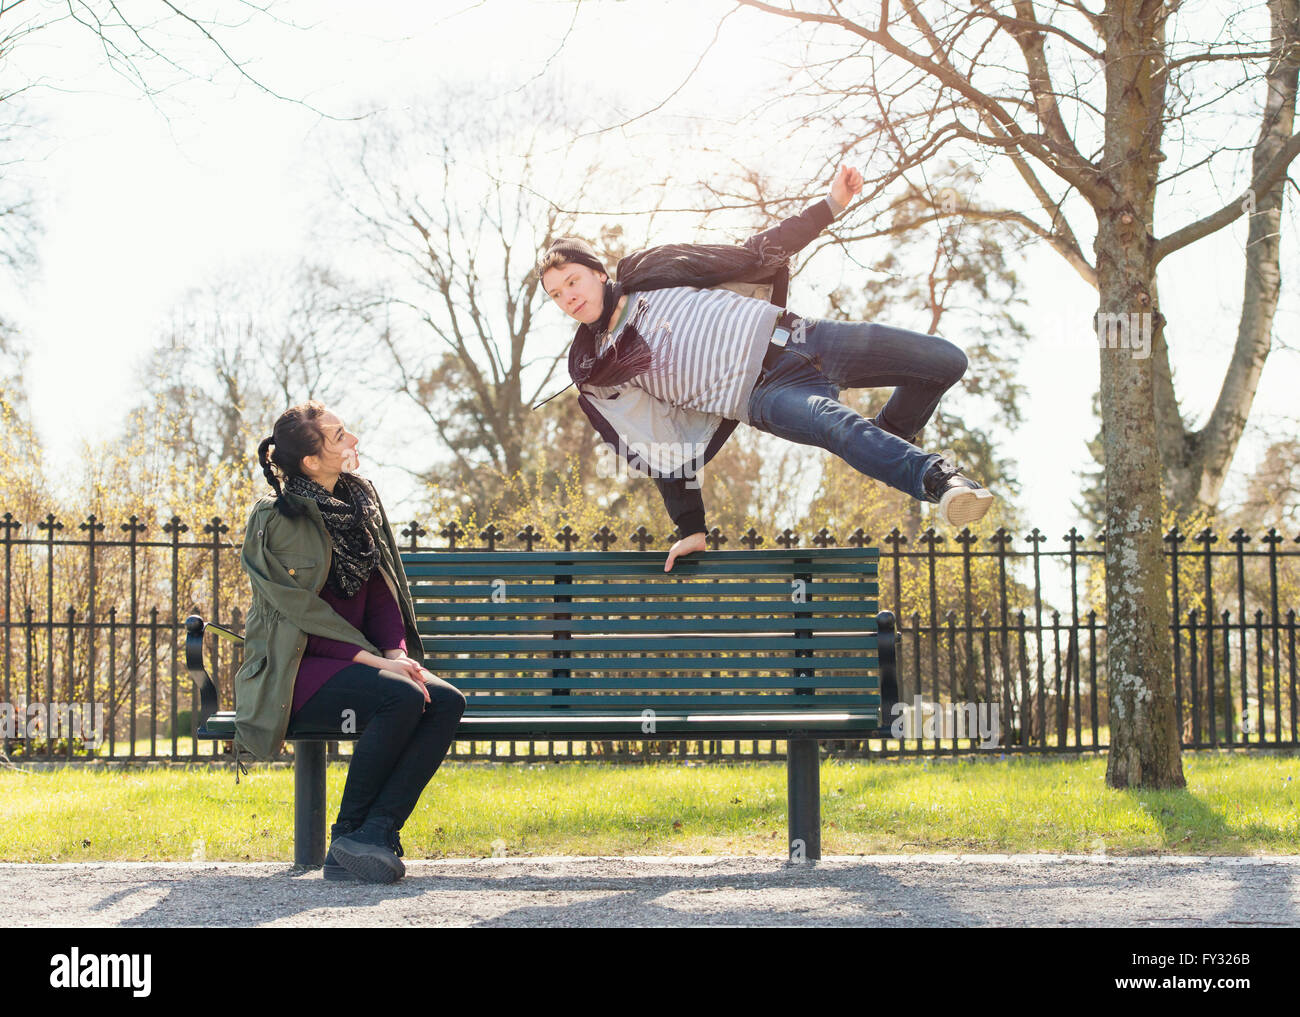 Young man trying to impress indifferent girl by jumping over a park bench, Sweden - Stock Image